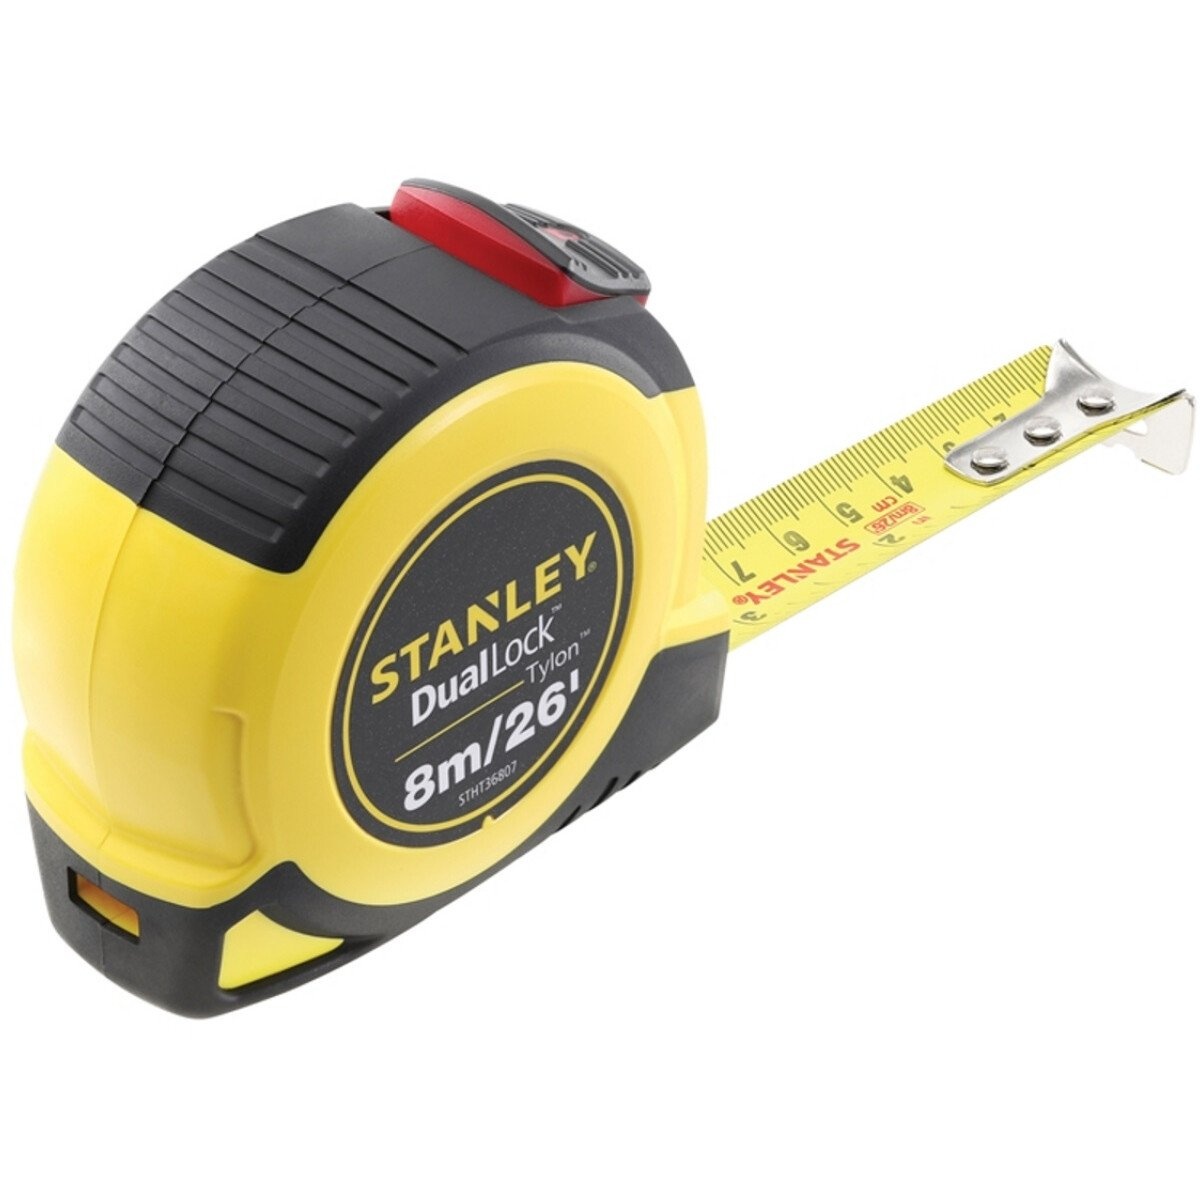 Stanley STHT36807-0 Dual Lock Tylon™ Pocket Tape with Metric and Imperial Graduations 8m/26ft (Width 25mm)